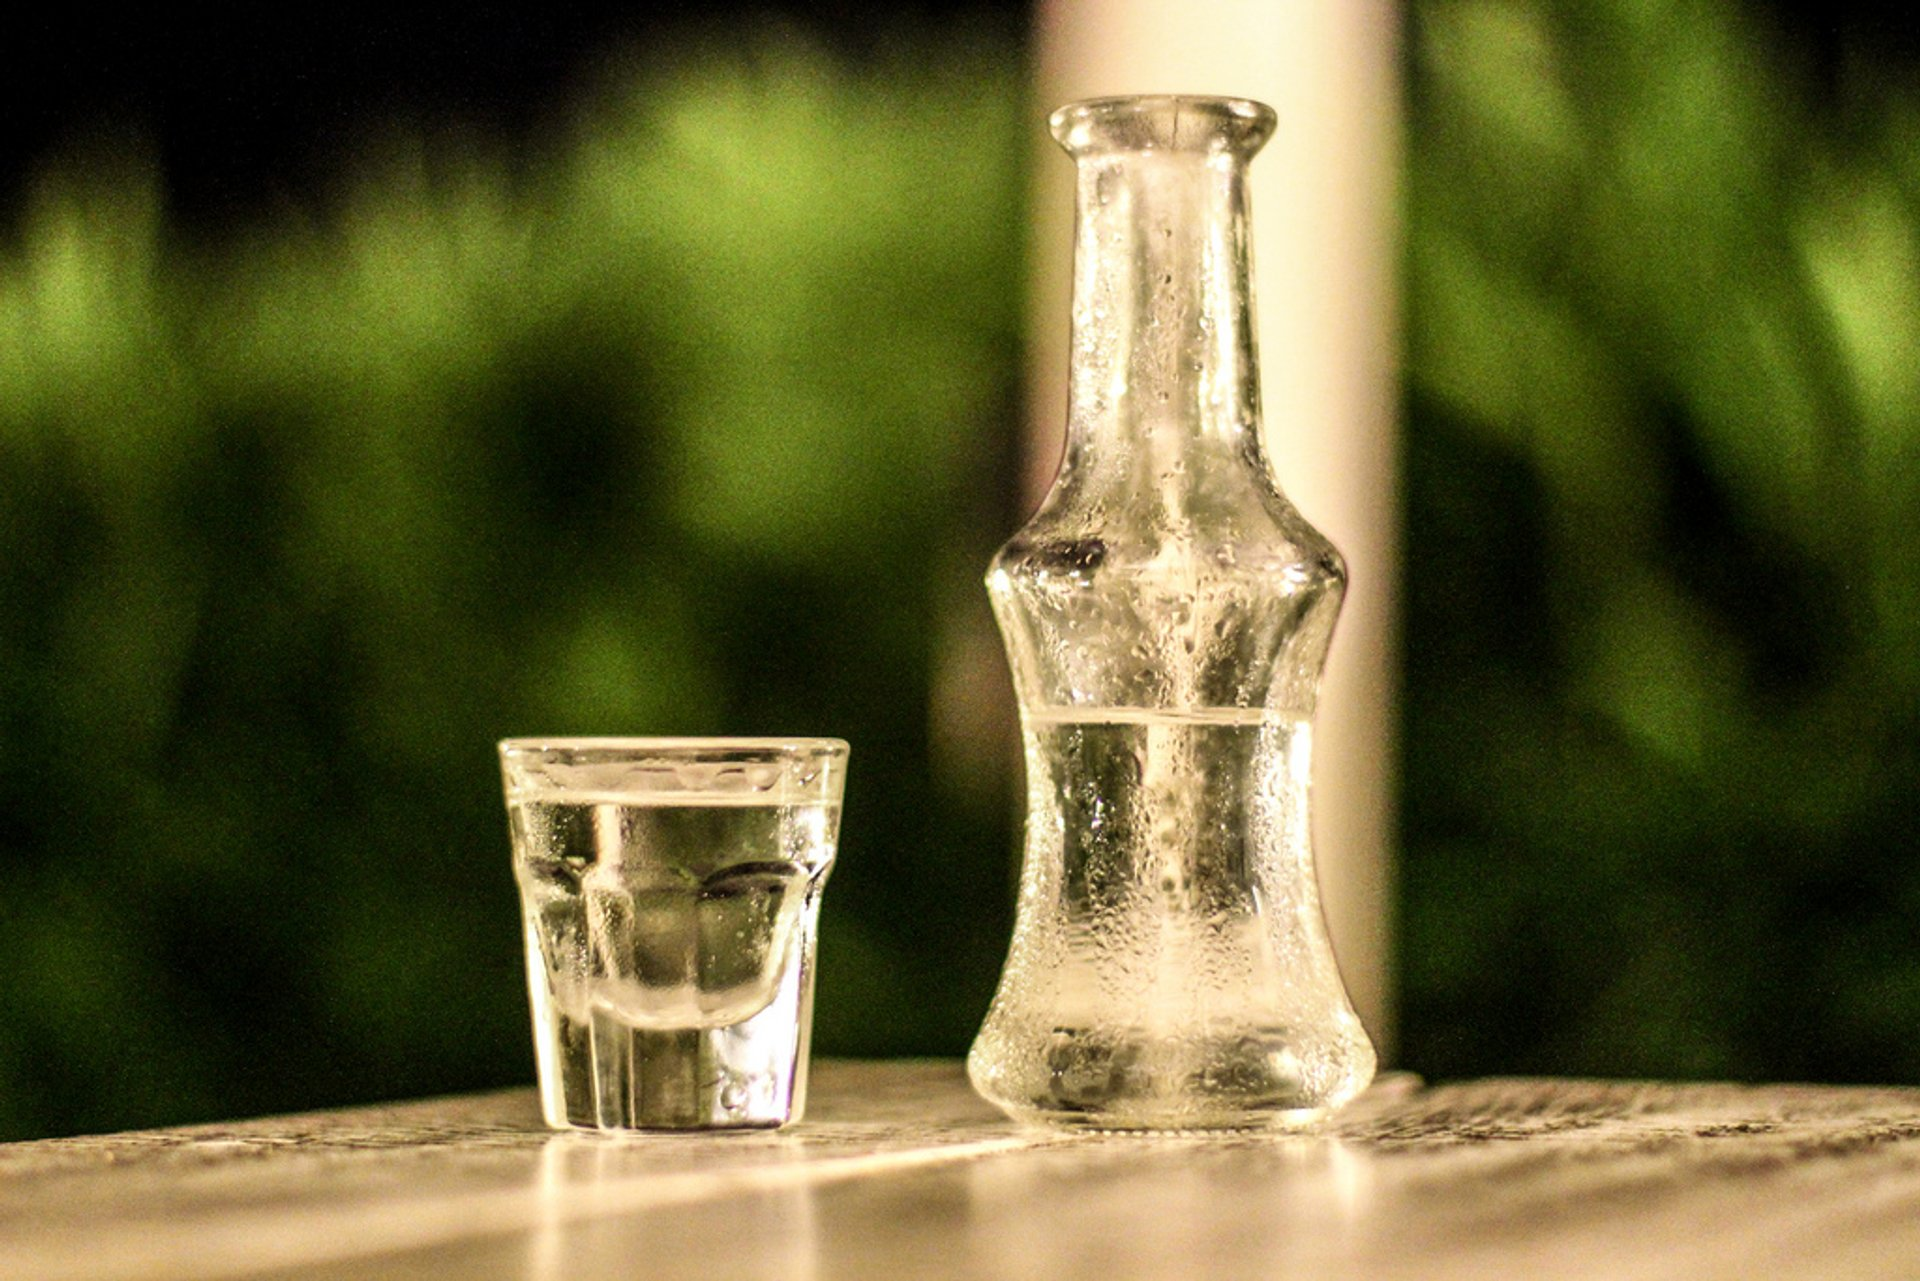 Tsikoudia (Cretan Raki) in Crete 2020 - Best Time